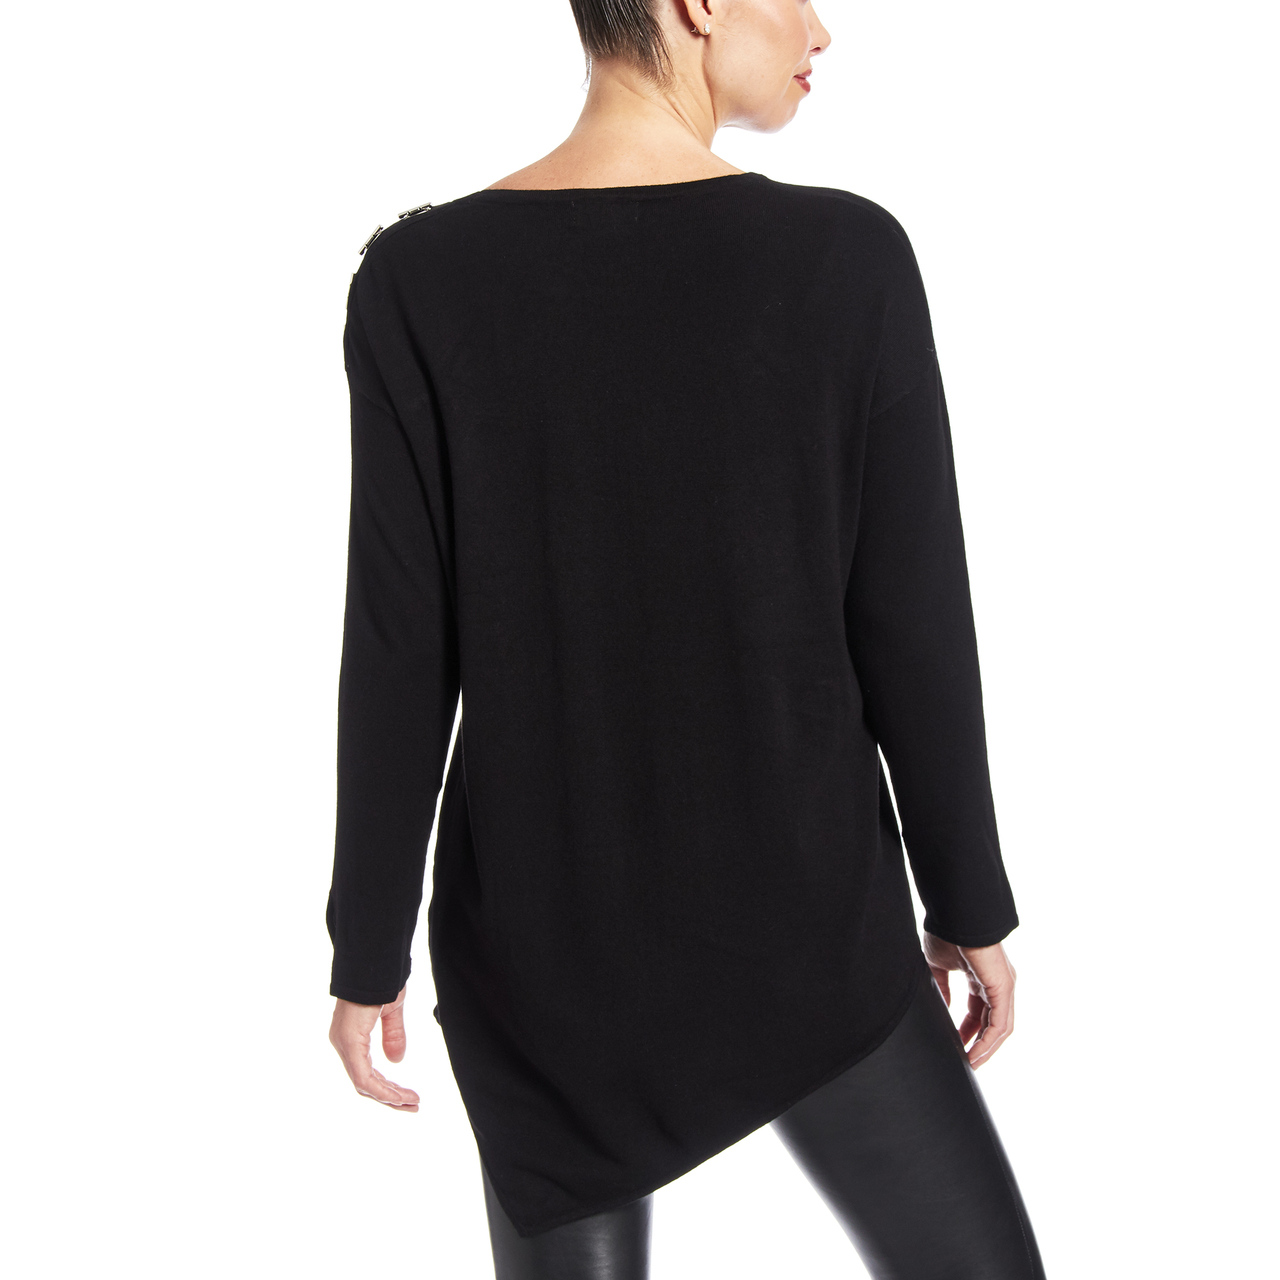 Assymetric Hem Sweater with Hardware Detail at Shoulder and Cuffs In Black